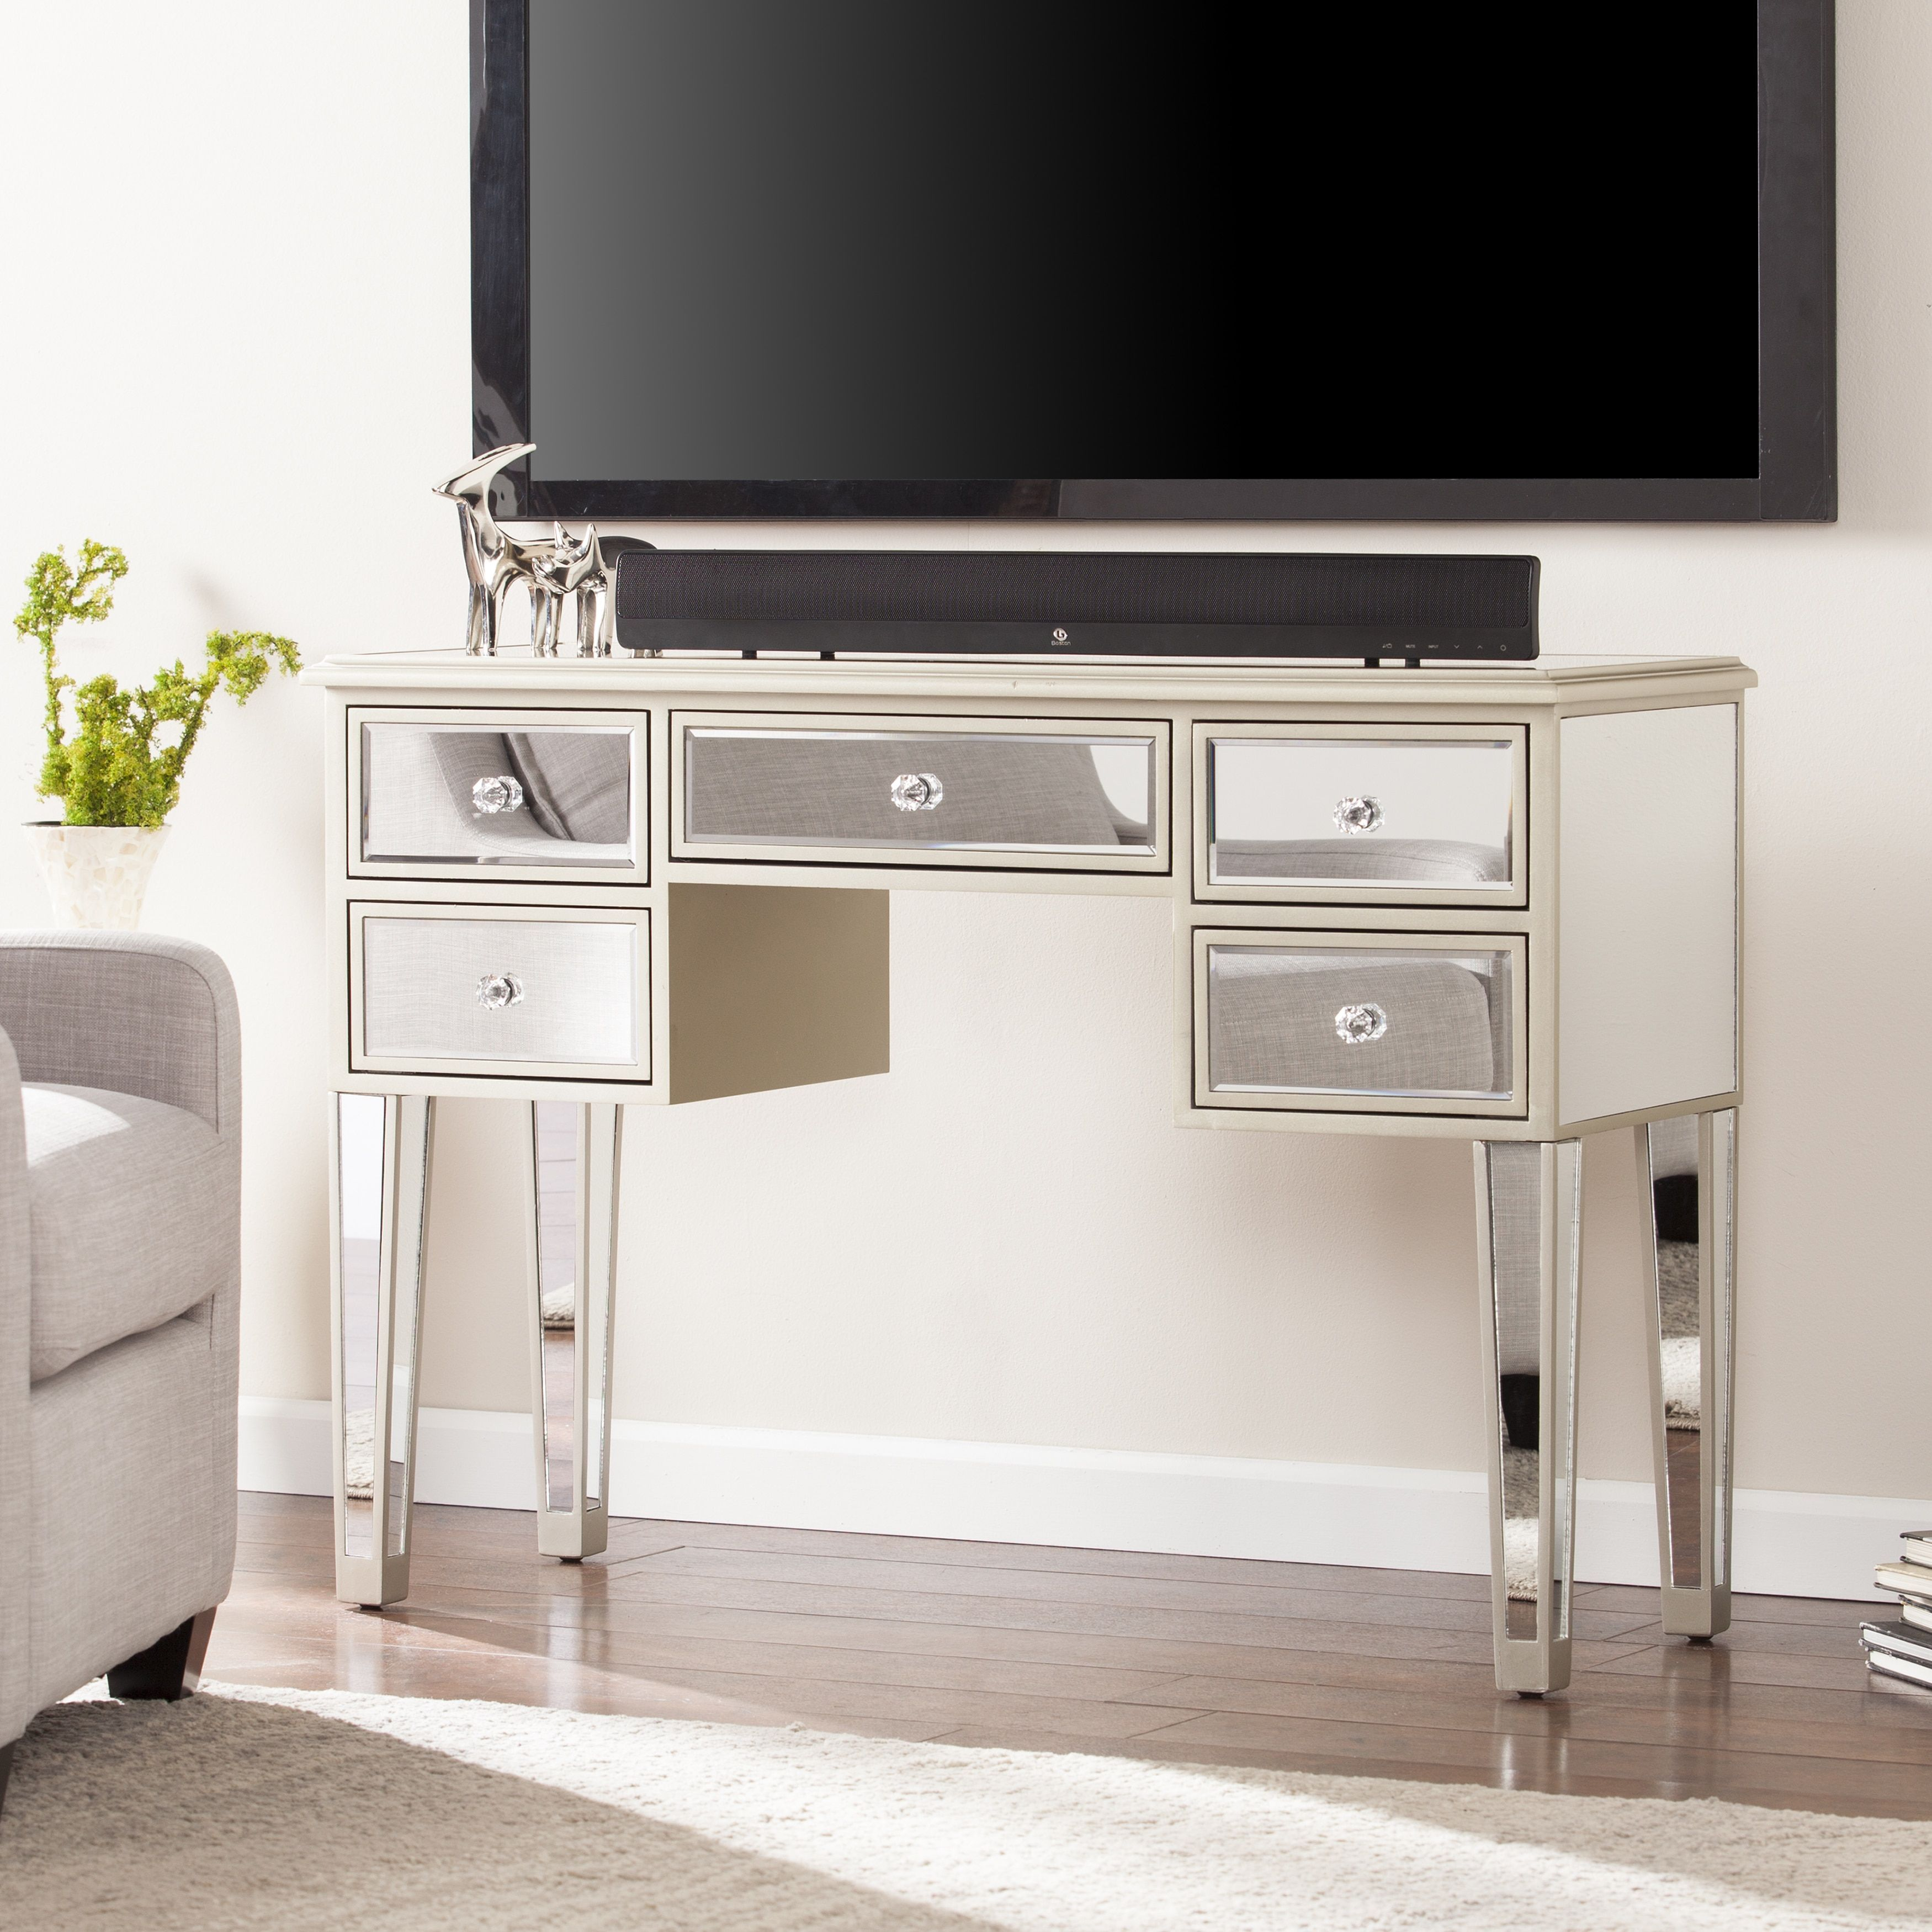 Minna Glam Mirrored Console Desk Champagne Glam Mirror Sofa End Tables Console Table